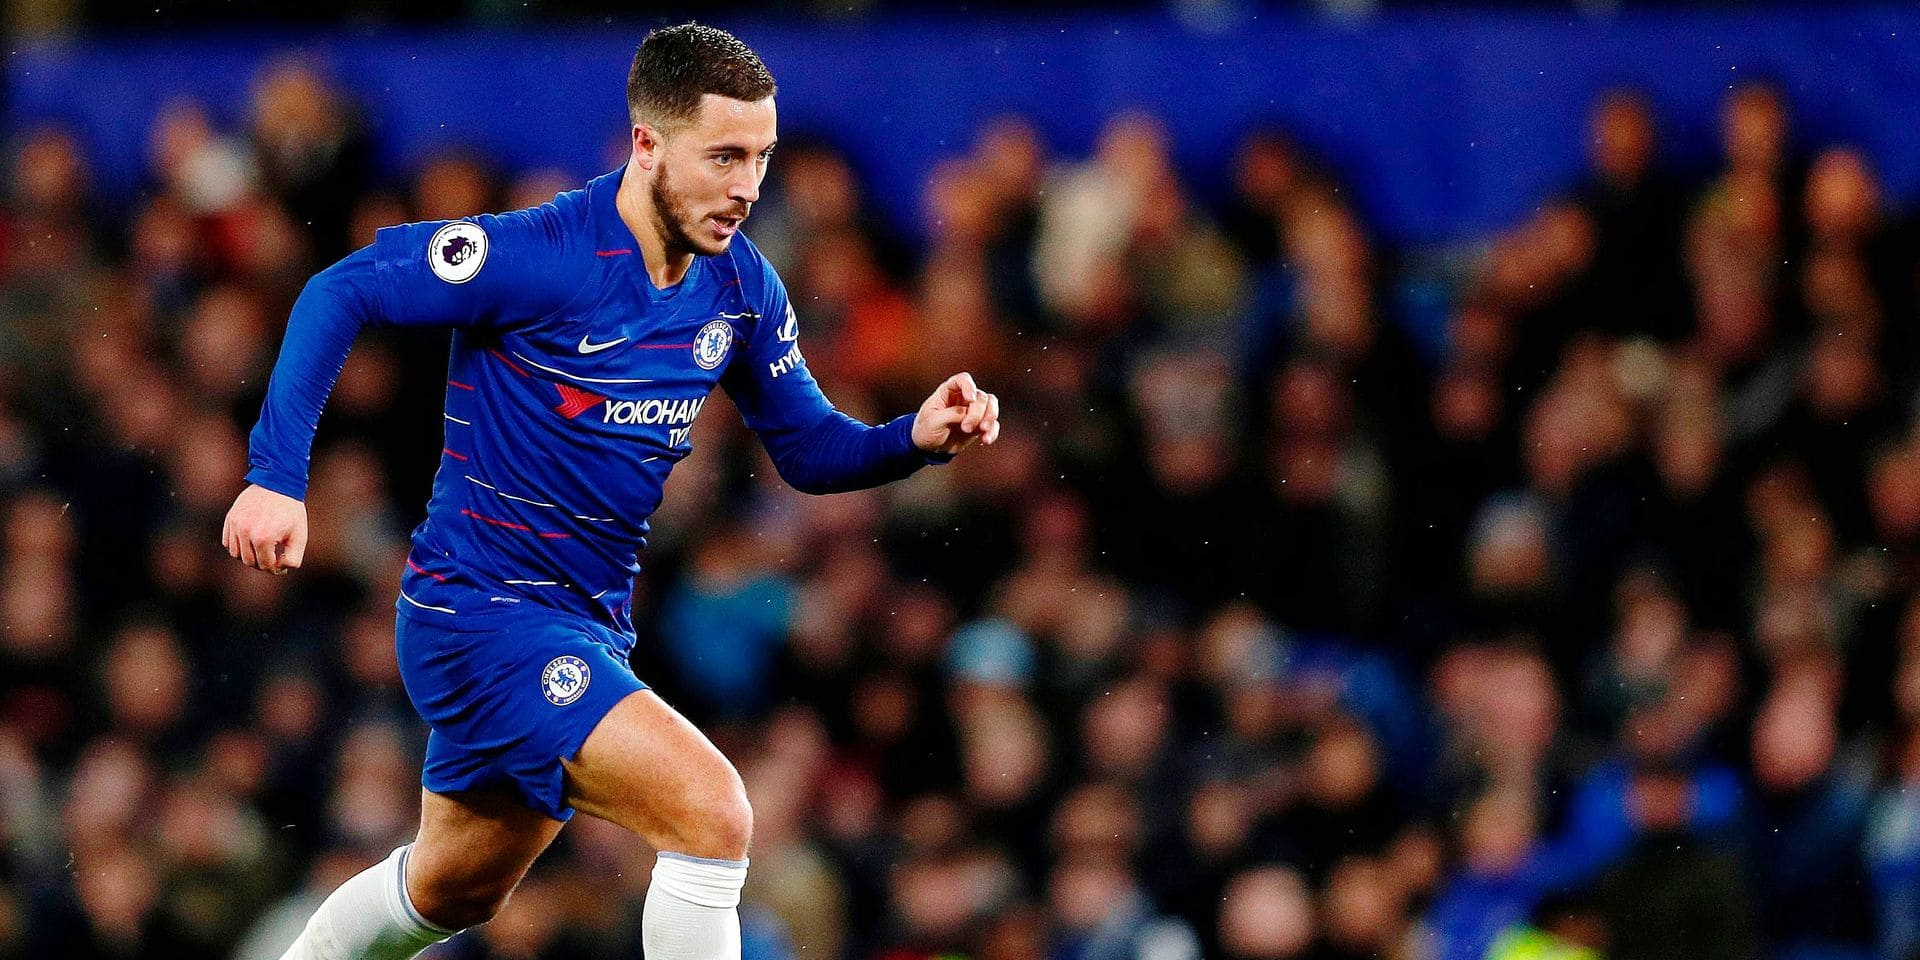 Chelsea's Belgian midfielder Eden Hazard runs with the ball during the English Premier League football match between Chelsea and Newcastle United at Stamford Bridge in London on January 12, 2019. (Photo by Adrian DENNIS / AFP) / RESTRICTED TO EDITORIAL USE. No use with unauthorized audio, video, data, fixture lists, club/league logos or 'live' services. Online in-match use limited to 120 images. An additional 40 images may be used in extra time. No video emulation. Social media in-match use limited to 120 images. An additional 40 images may be used in extra time. No use in betting publications, games or single club/league/player publications. /